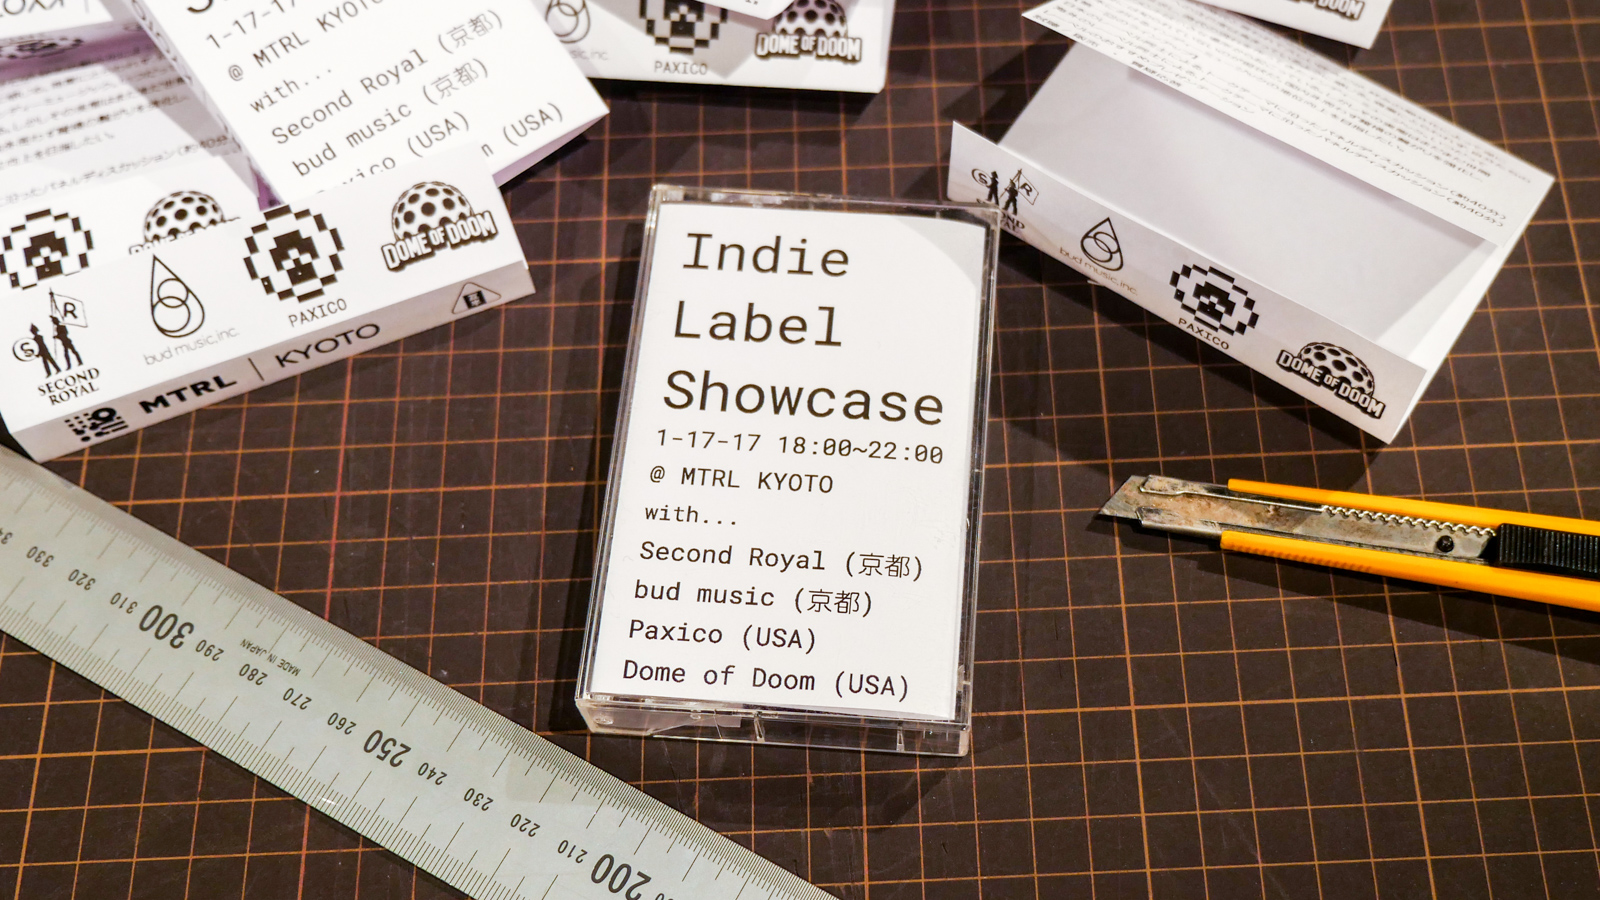 Rather than making a plain old flyer, I decided to come up with something a little more original and eye-catching so I made a cassette tape insert with all of the basic information for the event and left them at record stores all around Kyoto.